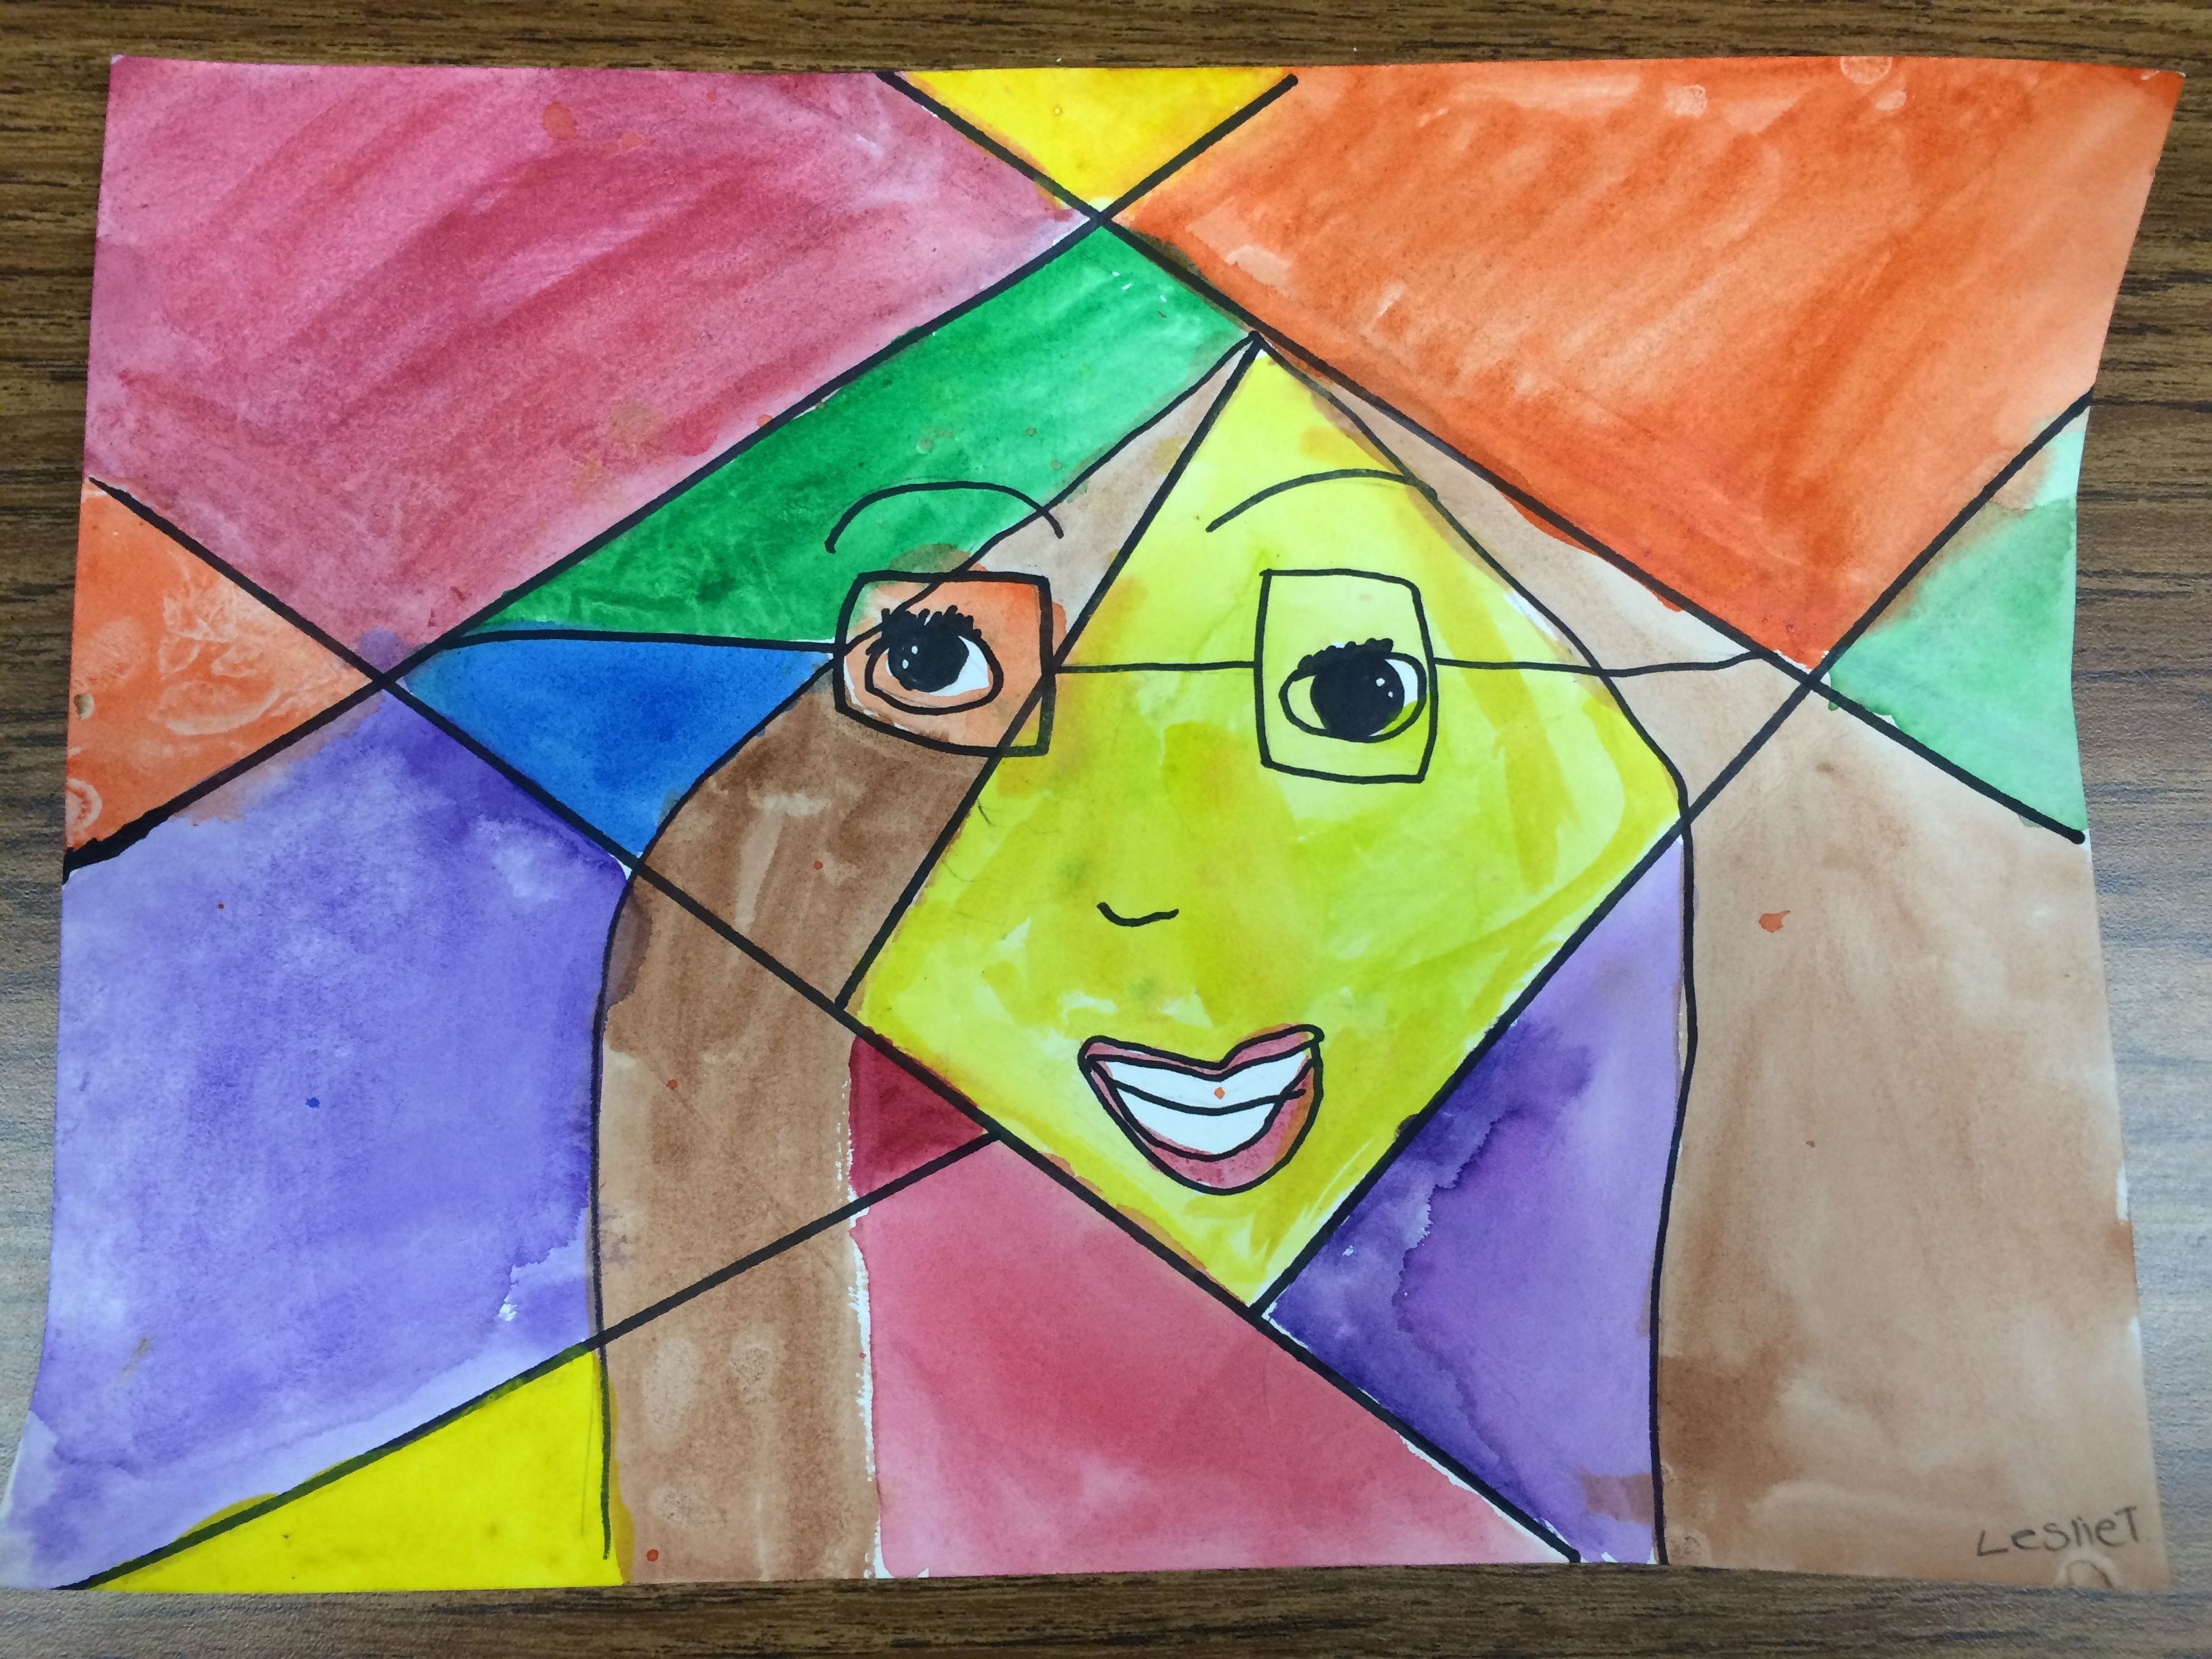 4th Cubism Self Portrait With Images